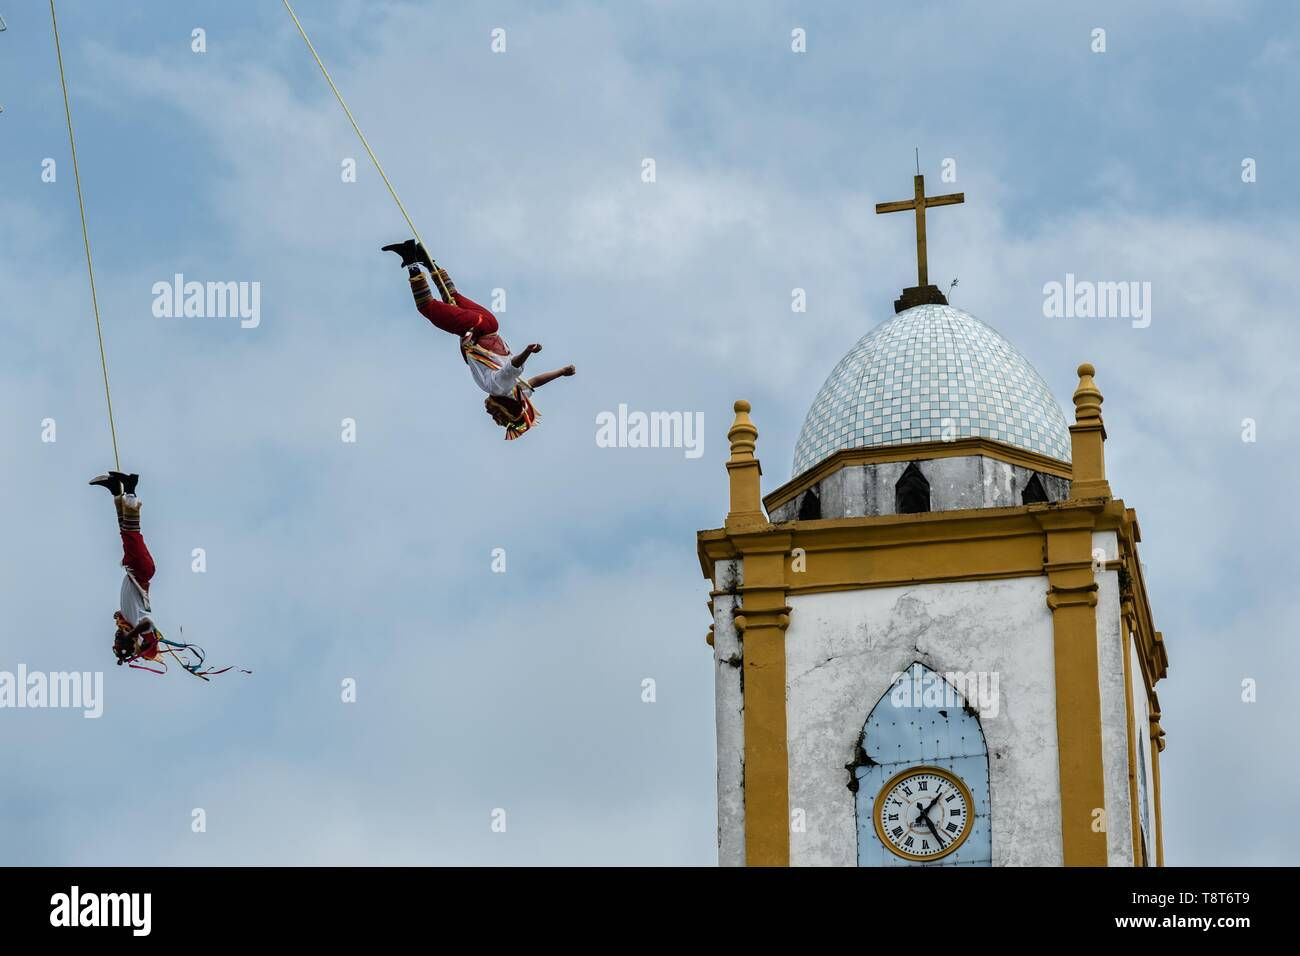 Voladores performs in front of the Church of the Assumption in Papantla, Veracruz, Mexico. The Danza de los Voladores is a indigenous Totonac ceremony involving five participants who climb a thirty-meter pole. Four of these tie ropes around their waists and wind the other end around the top of the pole in order to descend to the ground. The fifth participant stays at the top of the pole, playing a flute and a small drum. The ceremony has been inscribed as a Masterpiece of the Oral and Intangible Heritage of Humanity by UNESCO. - Stock Image